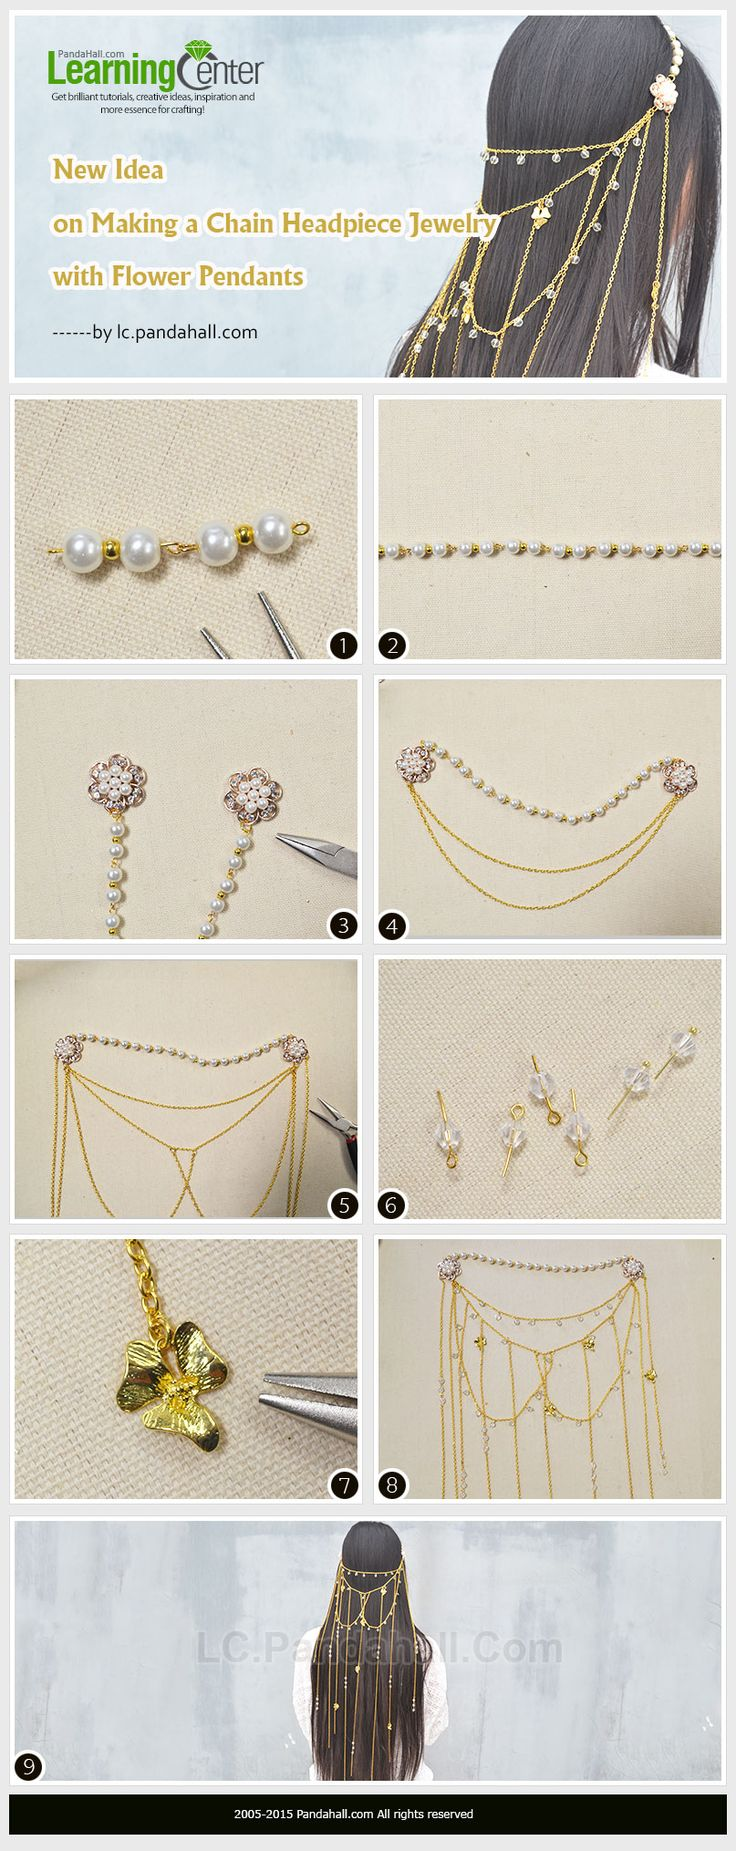 Here is a tutorial on how to make a chain headpiece jewelry with flower pendant for bride.